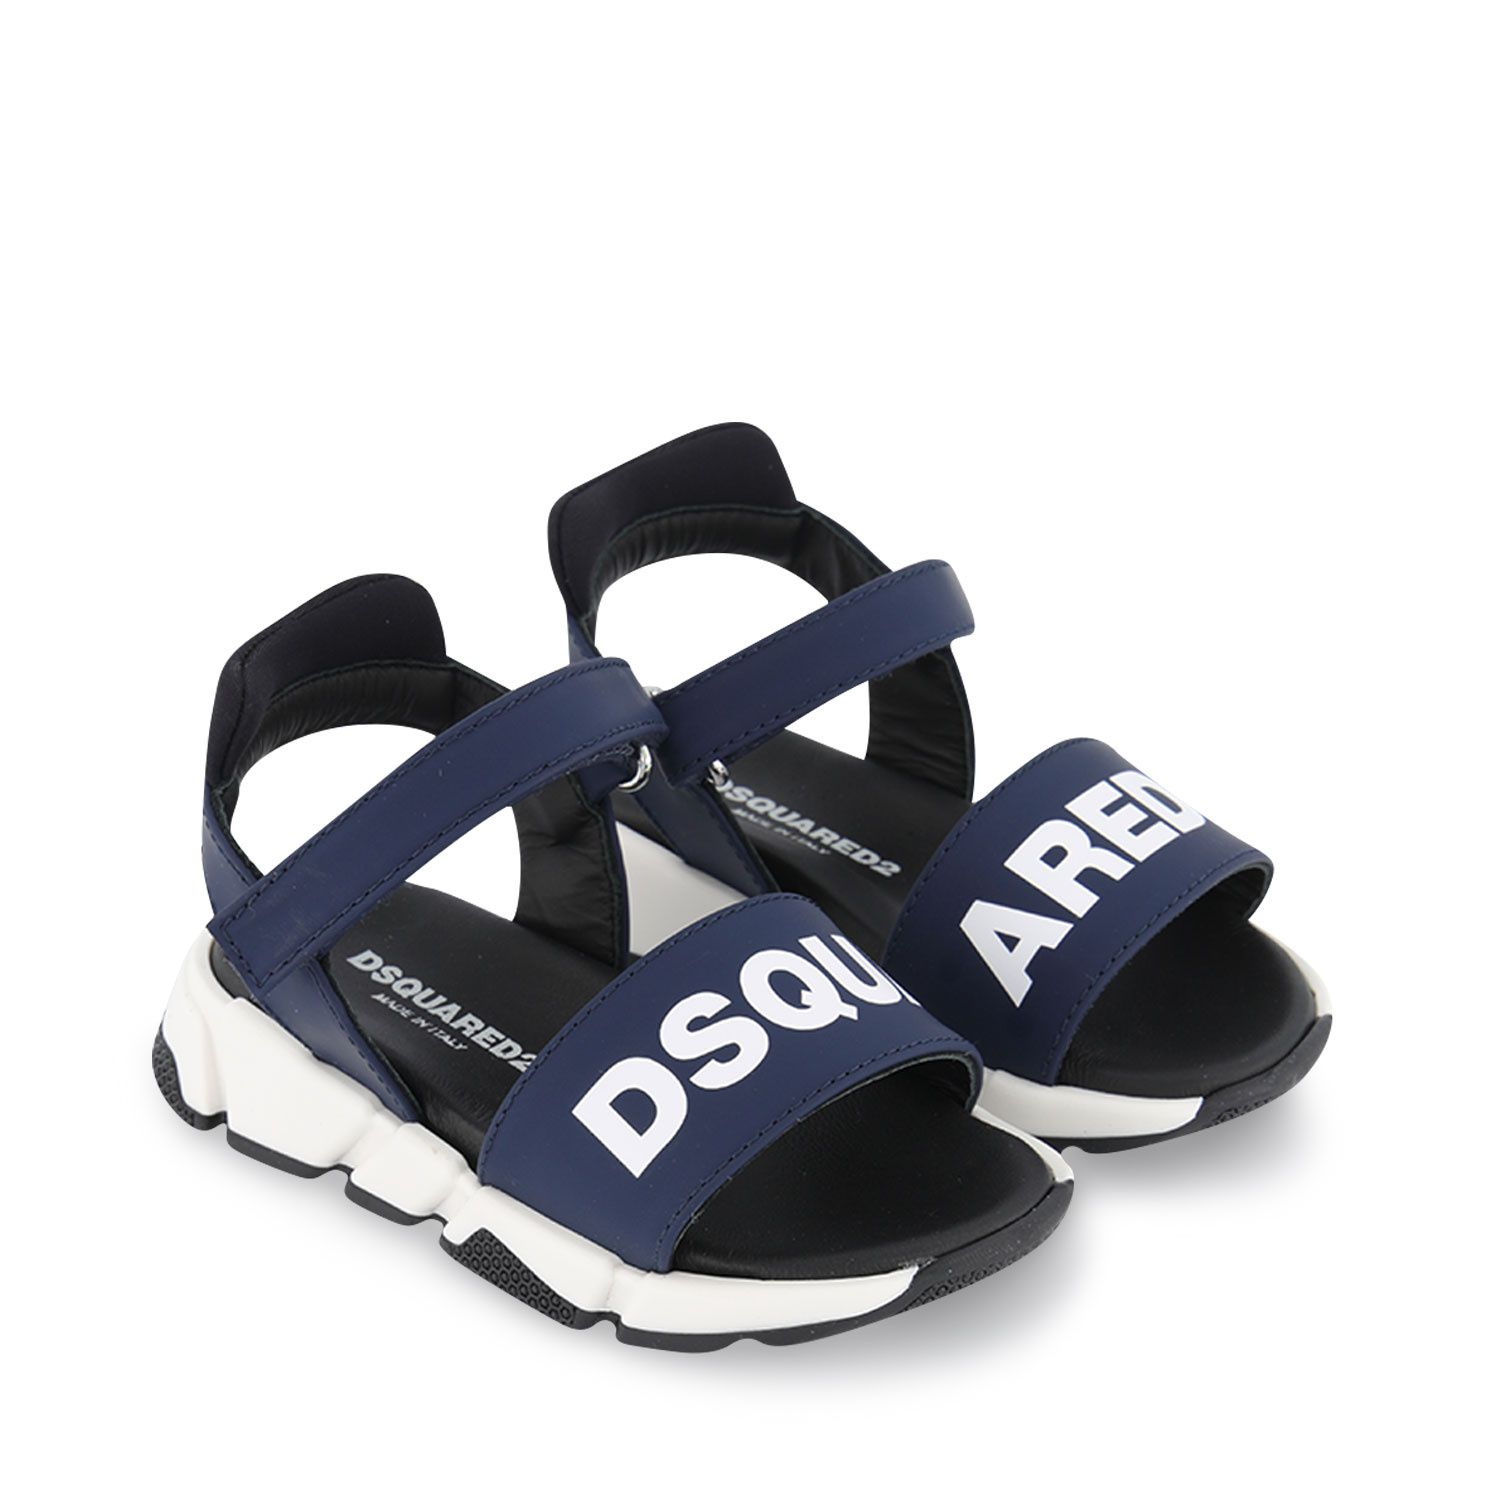 Picture of Dsquared2 66961 kids sandals navy